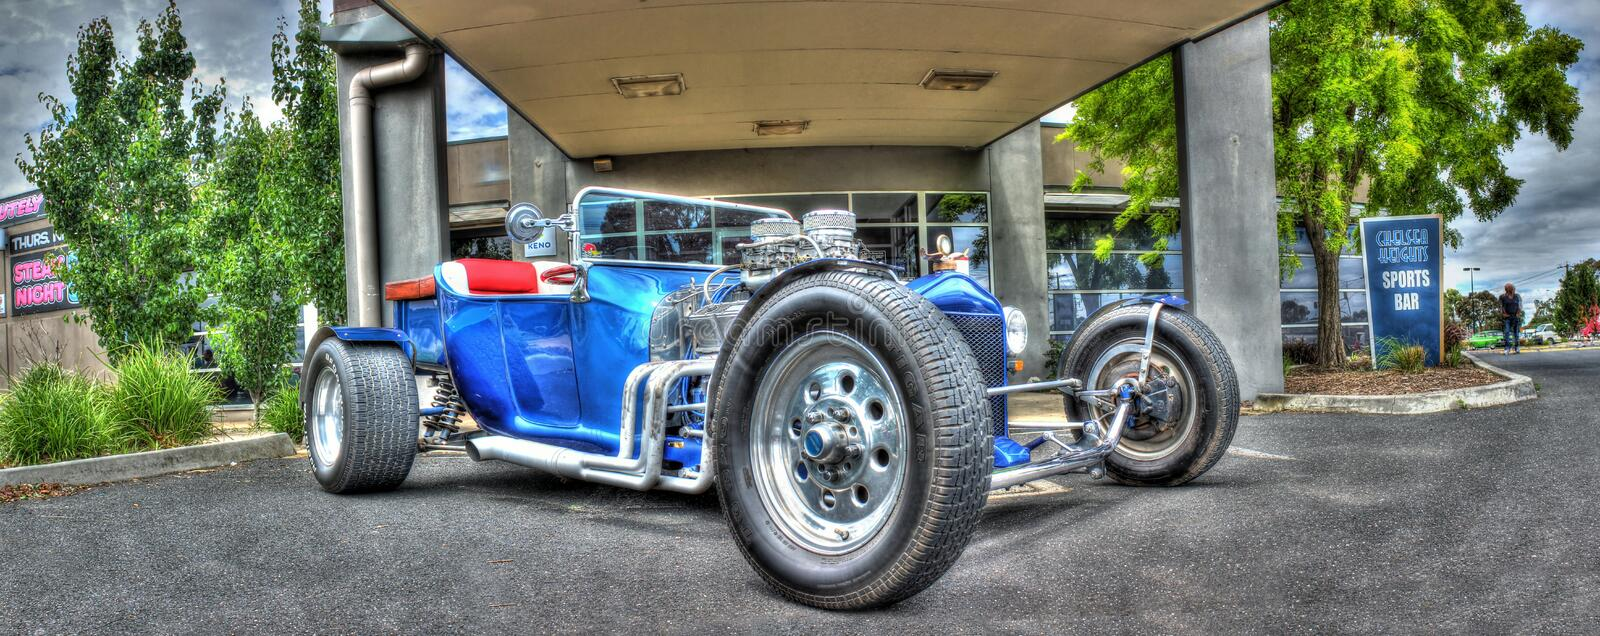 Vintage 1920s Ford hot rod stock photos